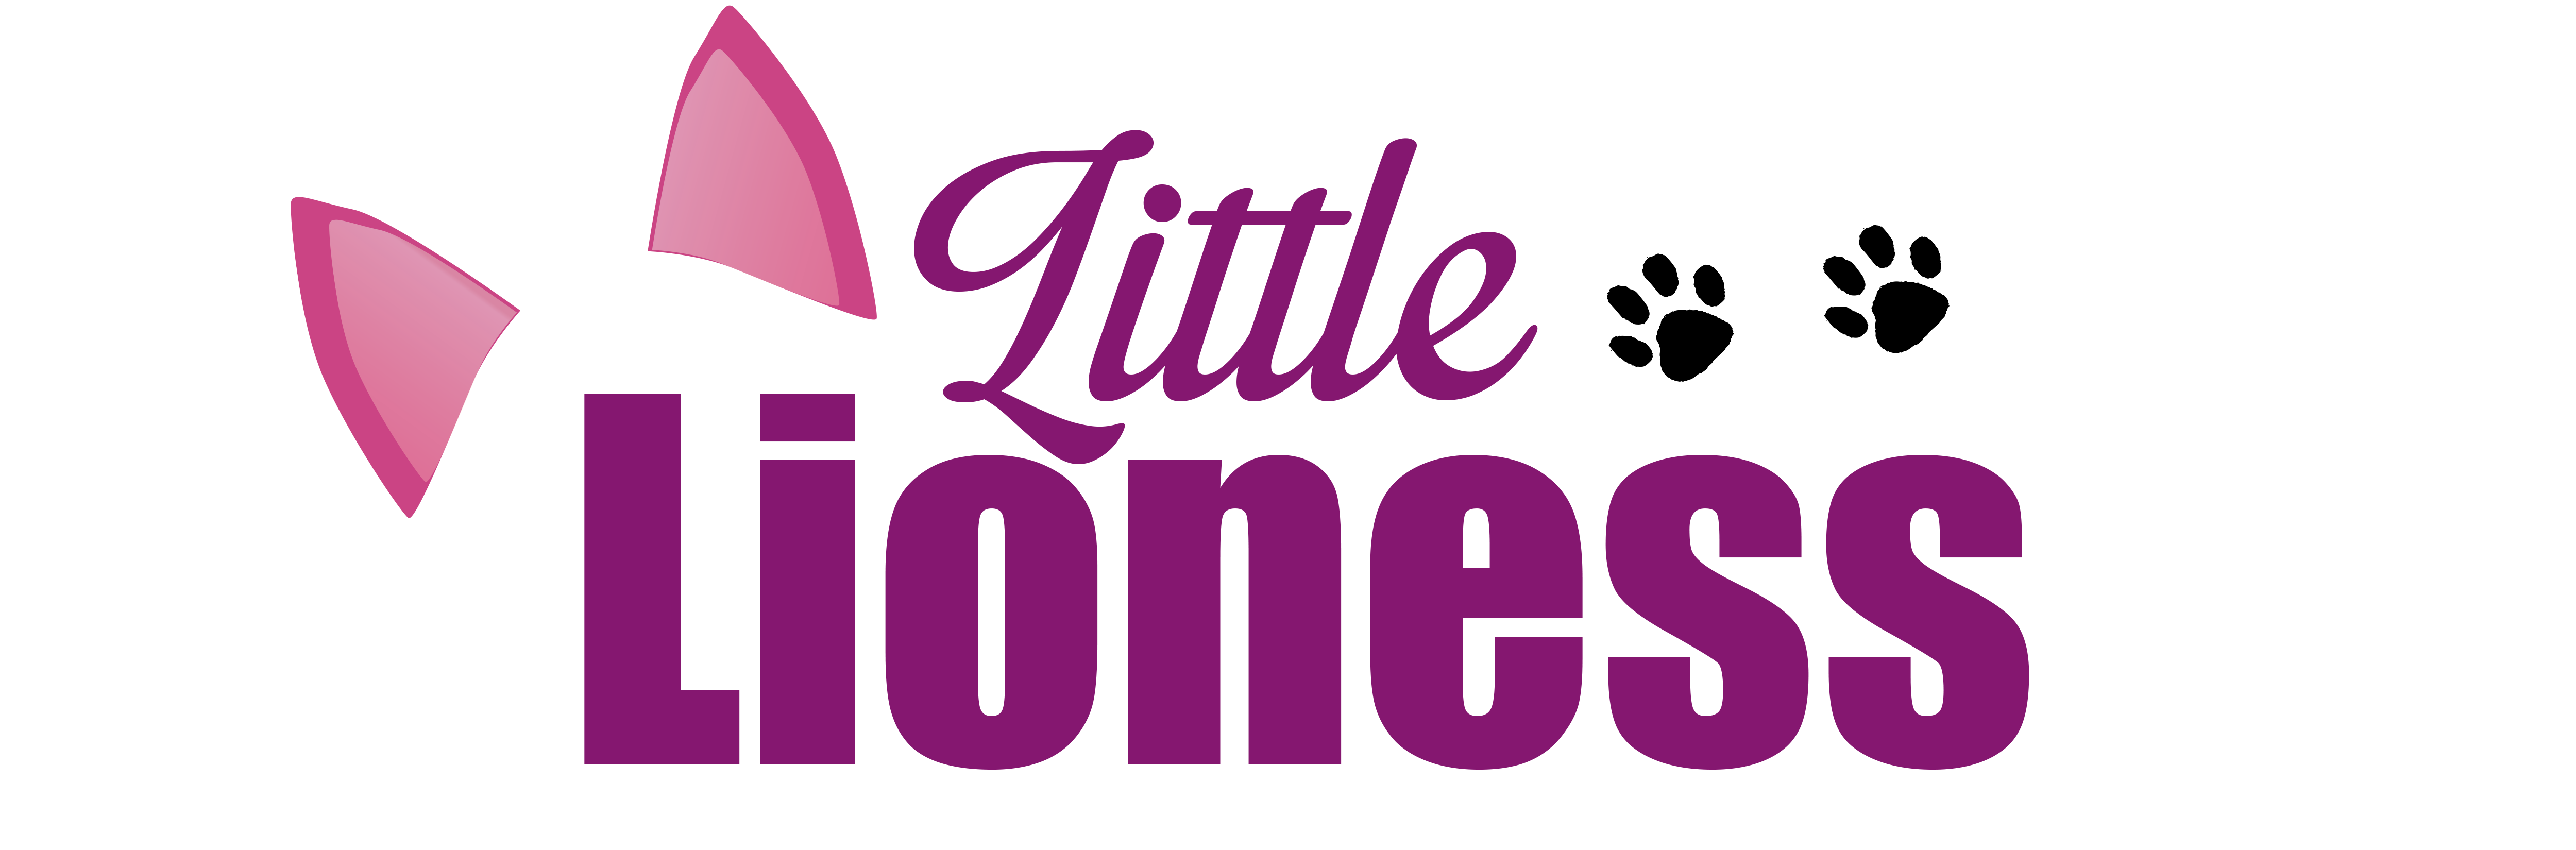 Home - The Little Lioness